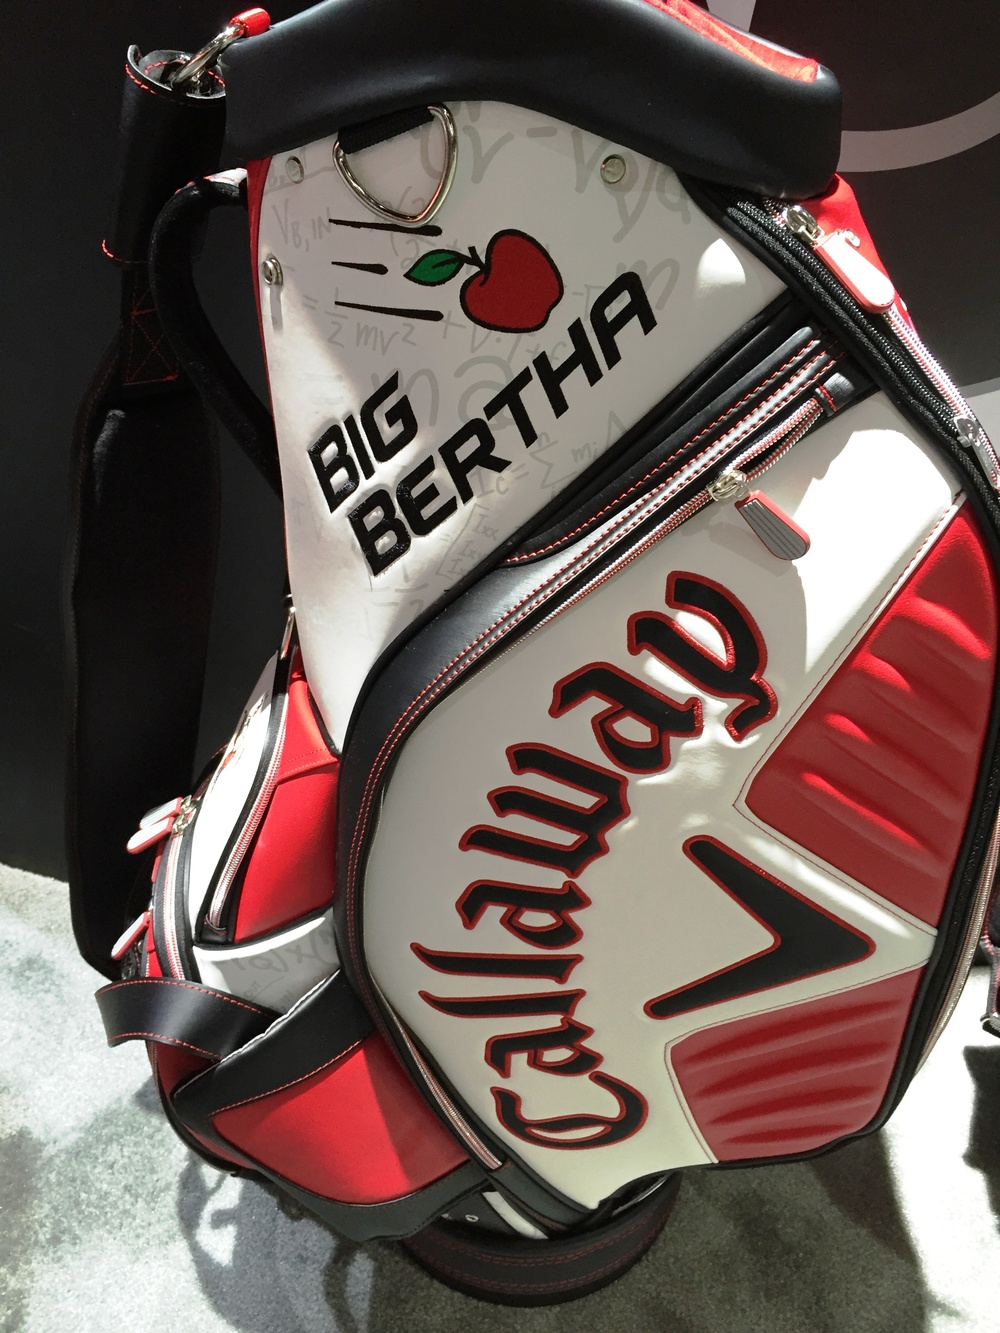 bertha bag.jpg